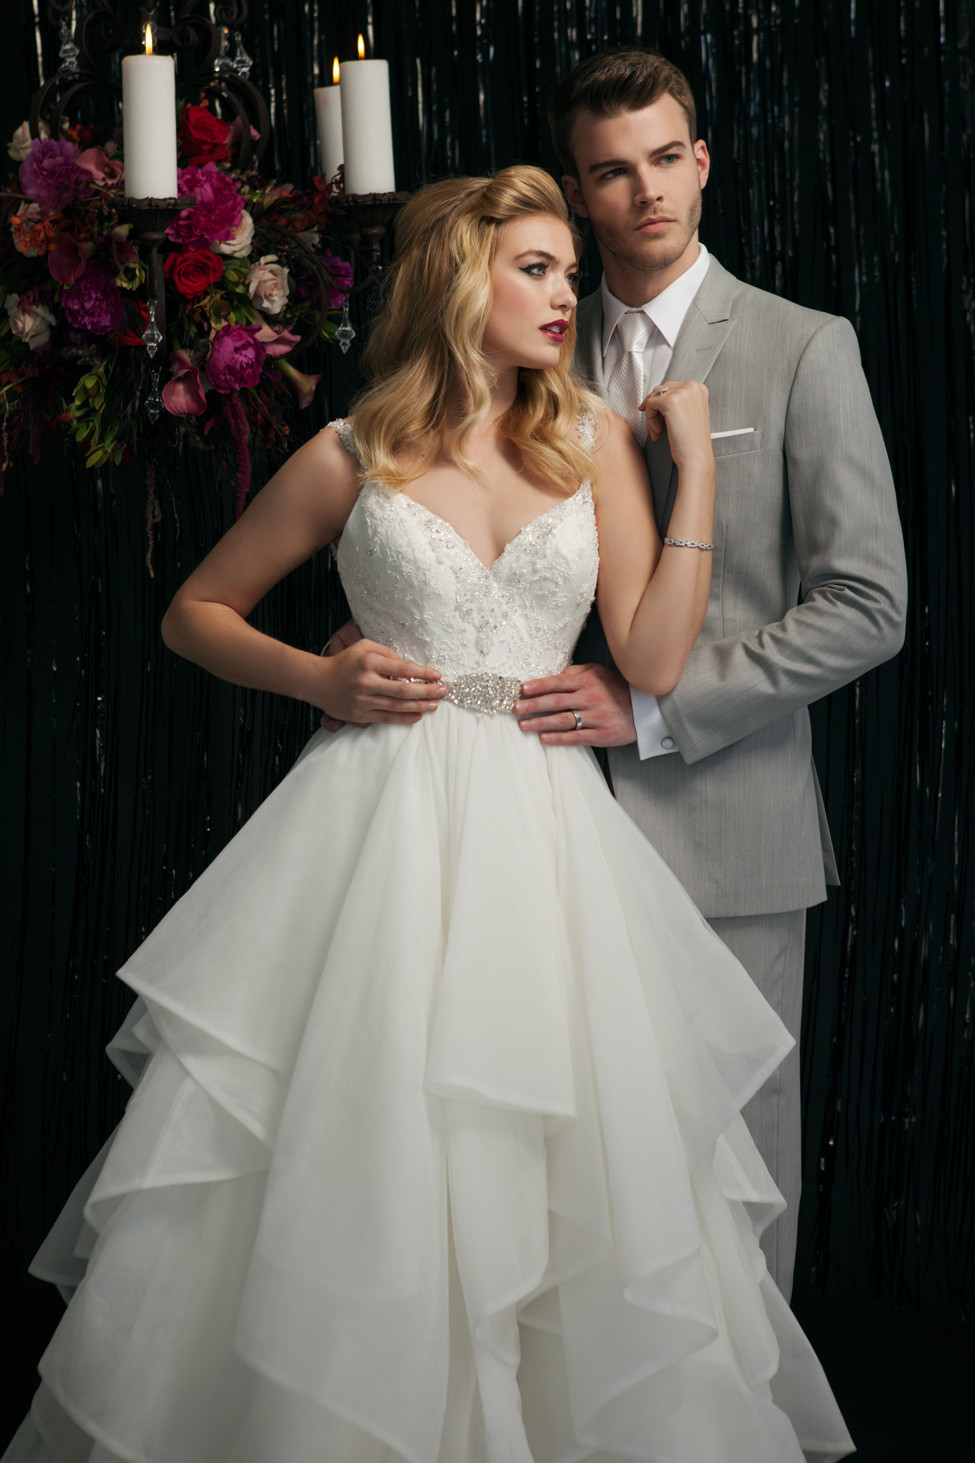 Best Day Ever: Wedding Gowns & Accessories From the Fall/Winter ...